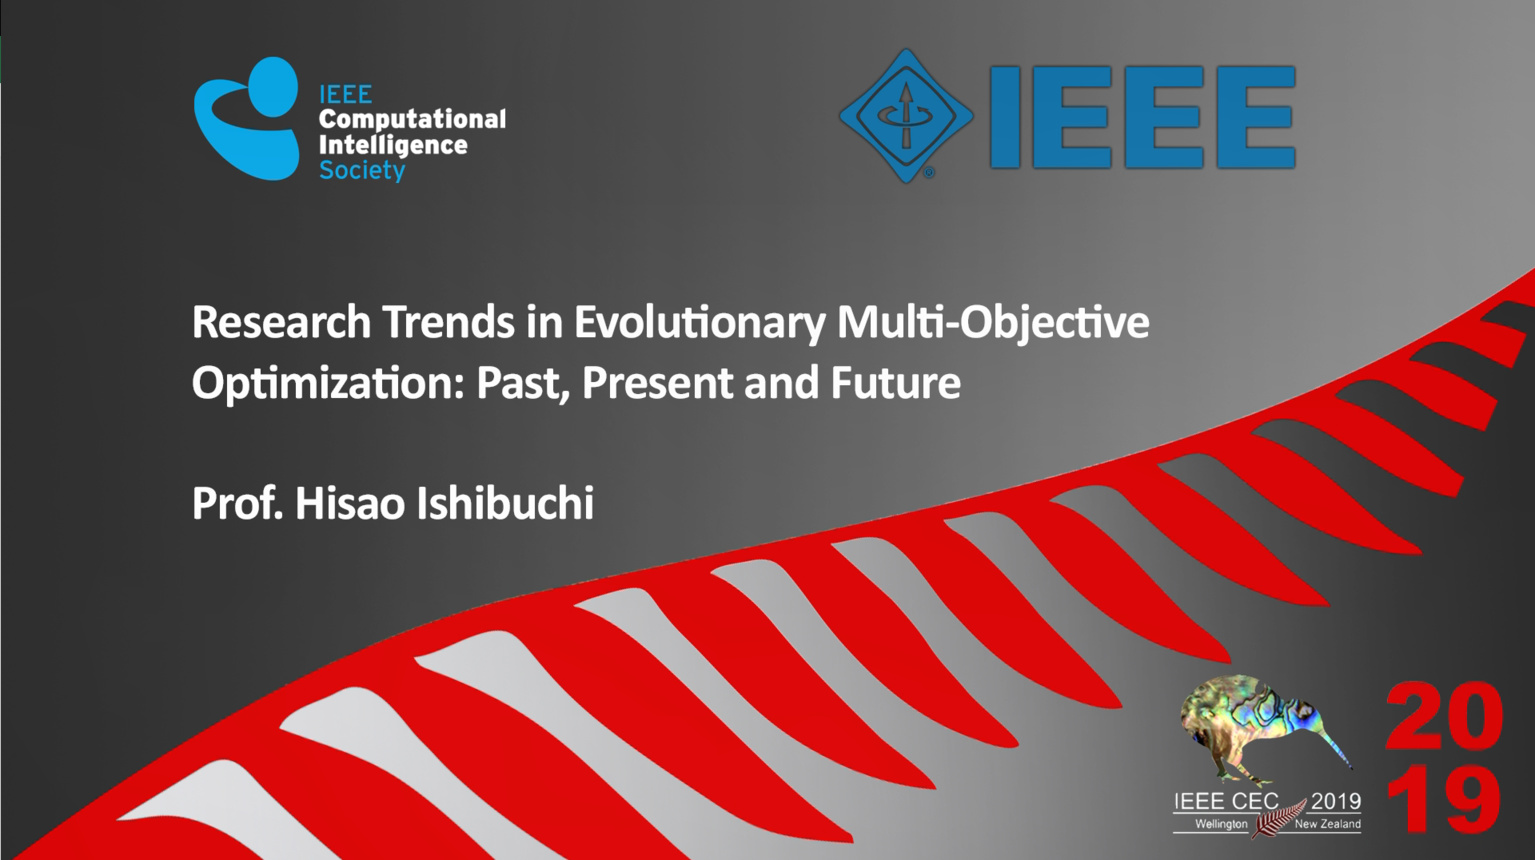 Research Trends in Evolutionary Multi-Objective Optimization: Past, Present and Future